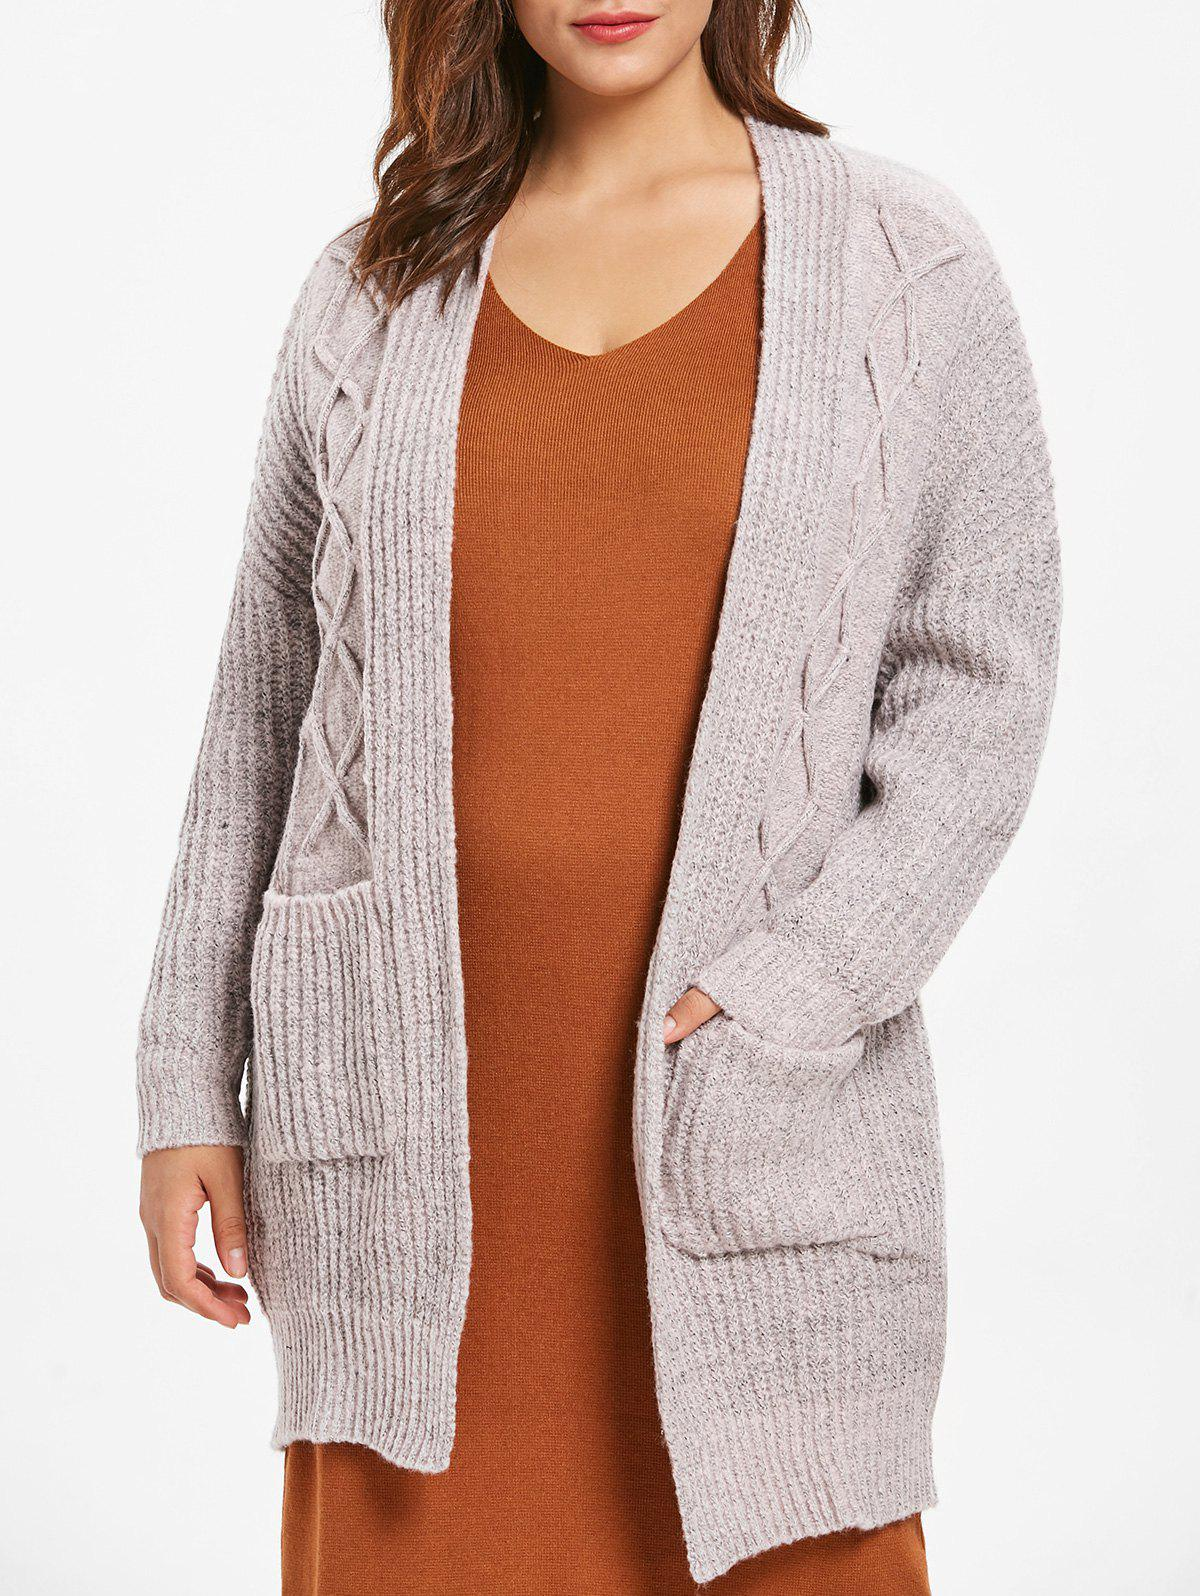 Chic Cable Knit Plus Size Front Pockets Cardigan